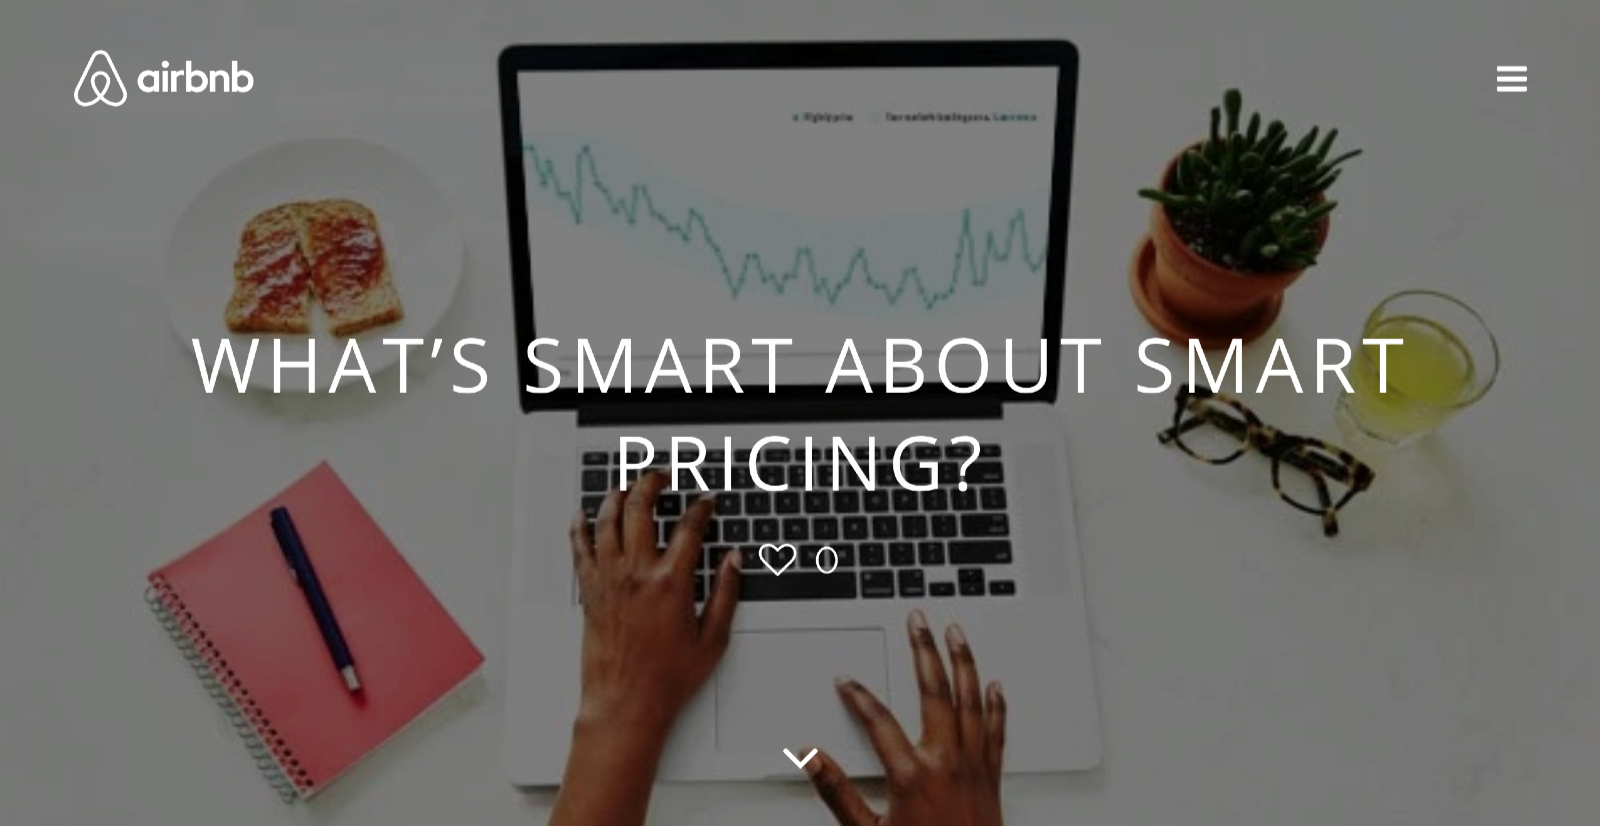 Airbnb's smart pricing tool